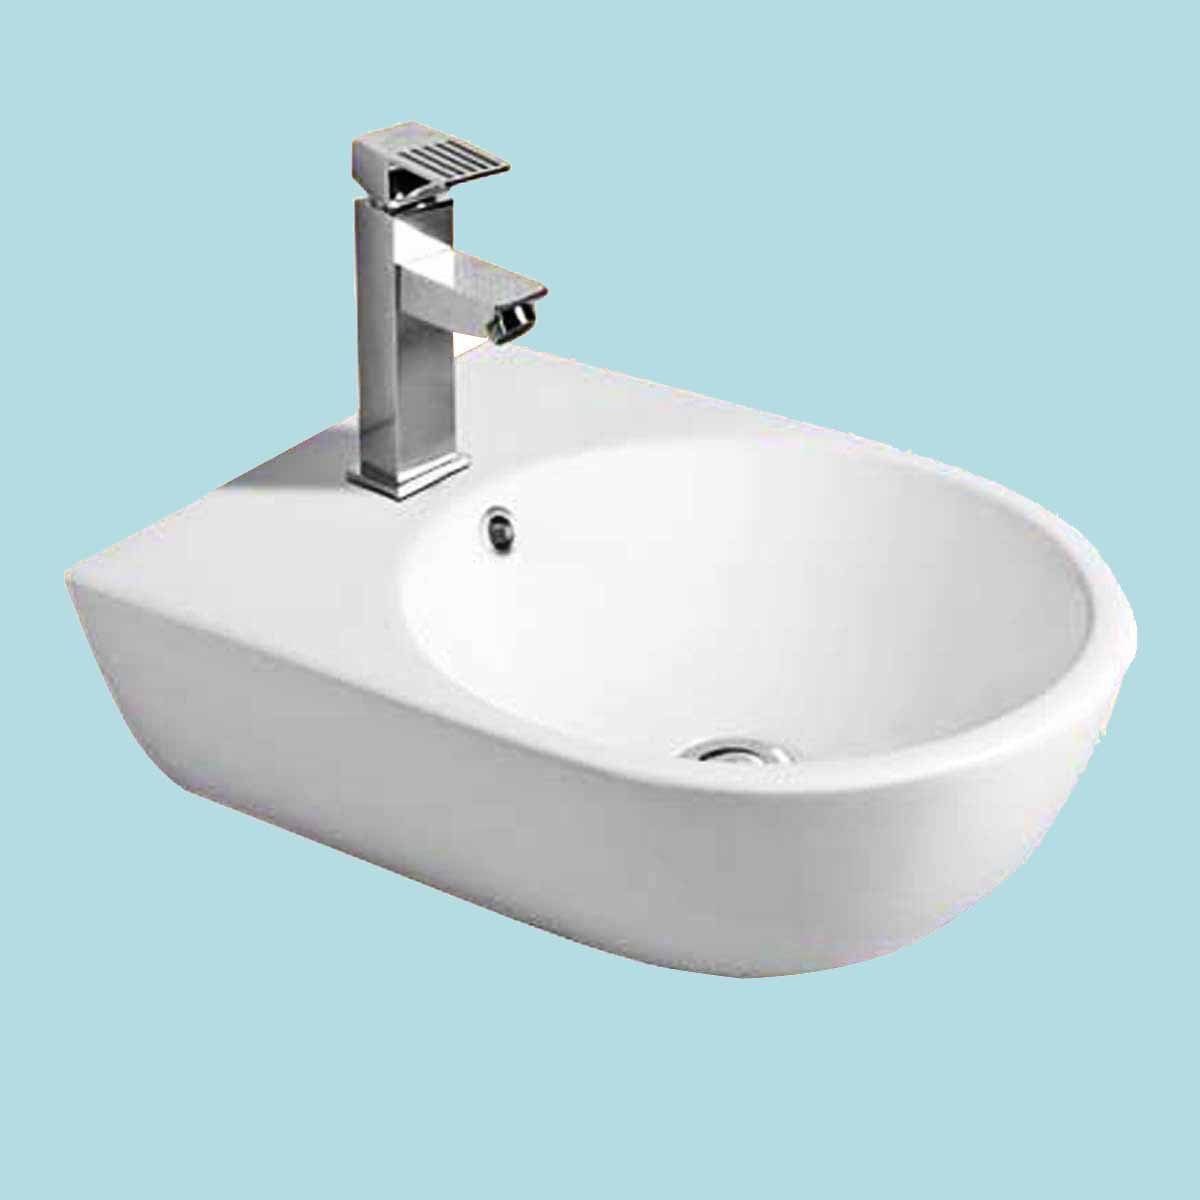 The Renovators Supply Small Wall Mount Bathroom Sink Above Counter Vessel White Renovator's Supply